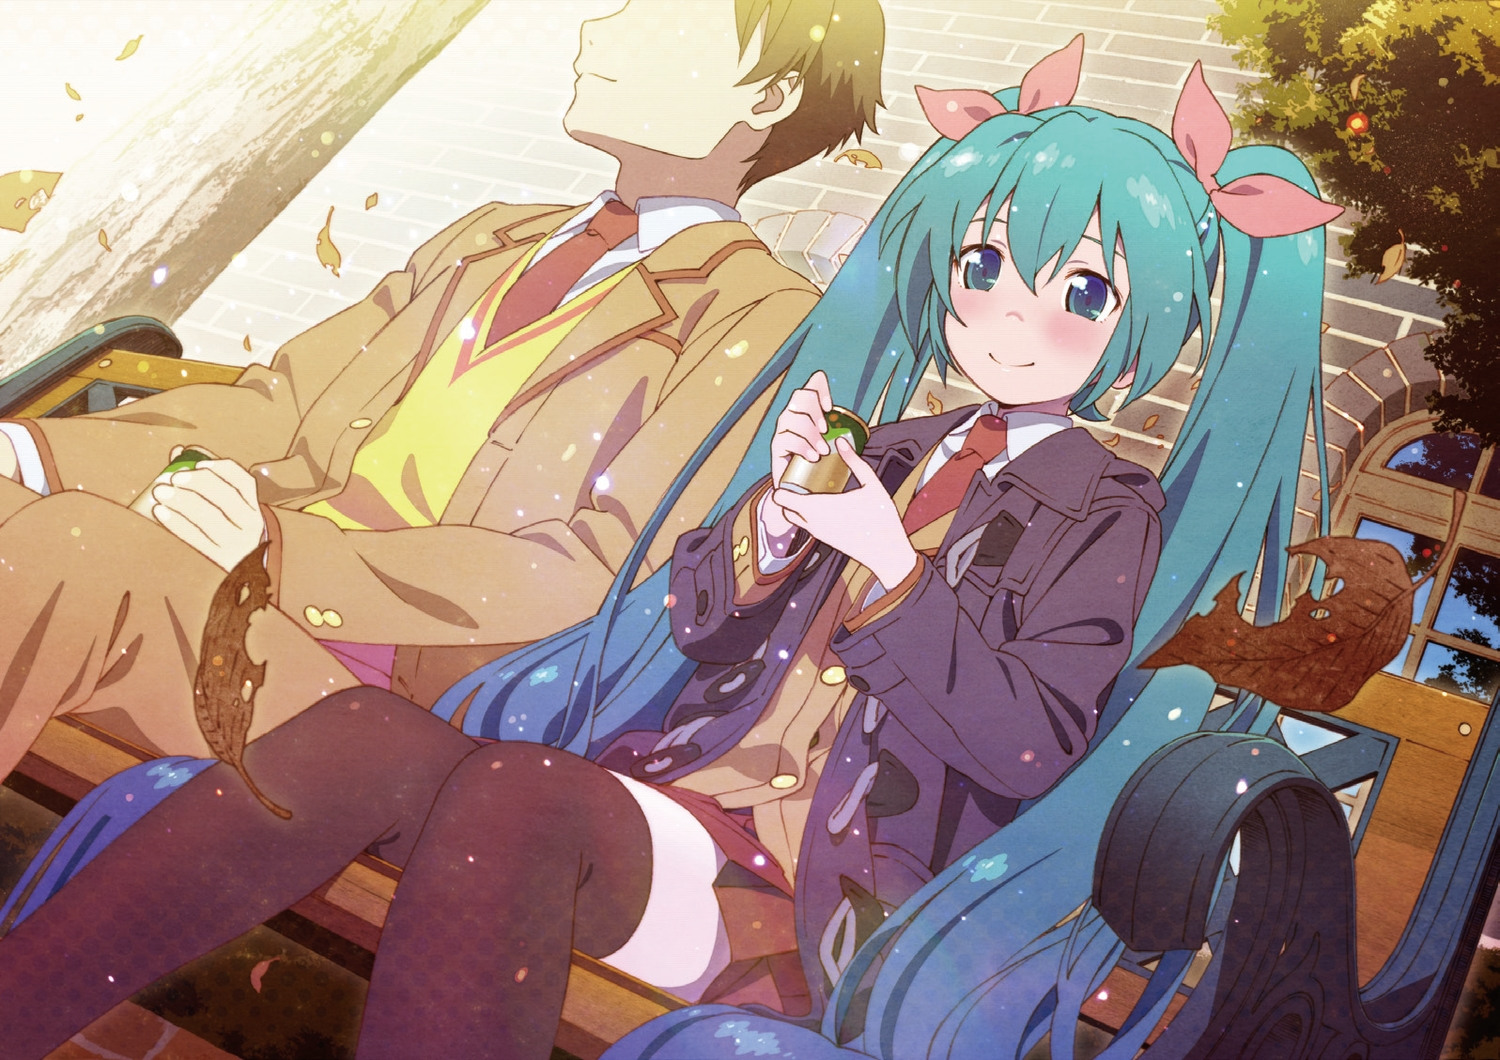 aqua_eyes aqua_hair autumn drink hatsune_miku leaves long_hair male school_uniform shiwasu_takashi thighhighs tie tree twintails vocaloid zettai_ryouiki